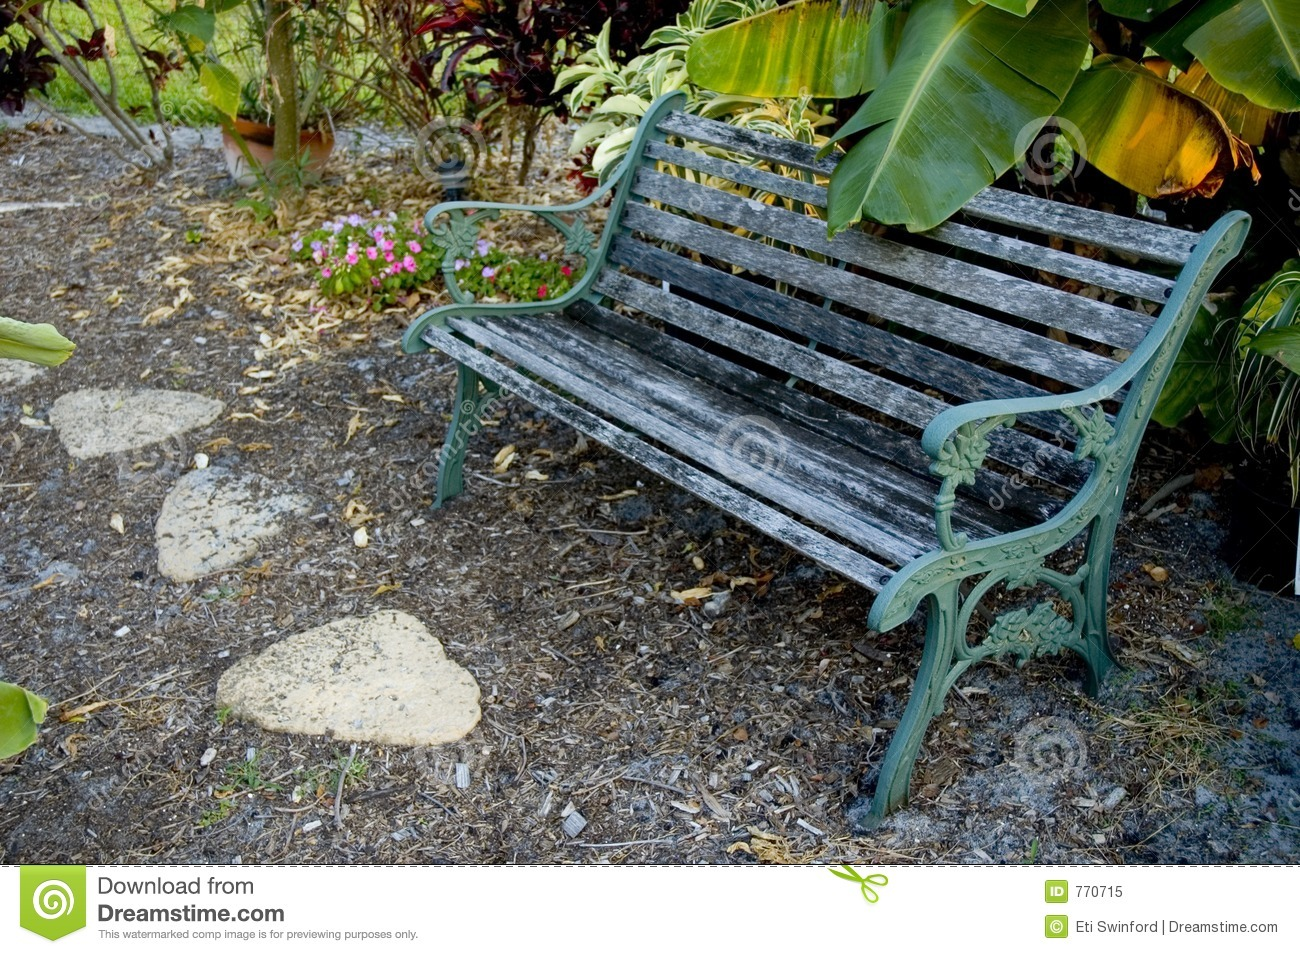 Banc de jardin photo libre de droits image 770715 for Plan de banc de jardin